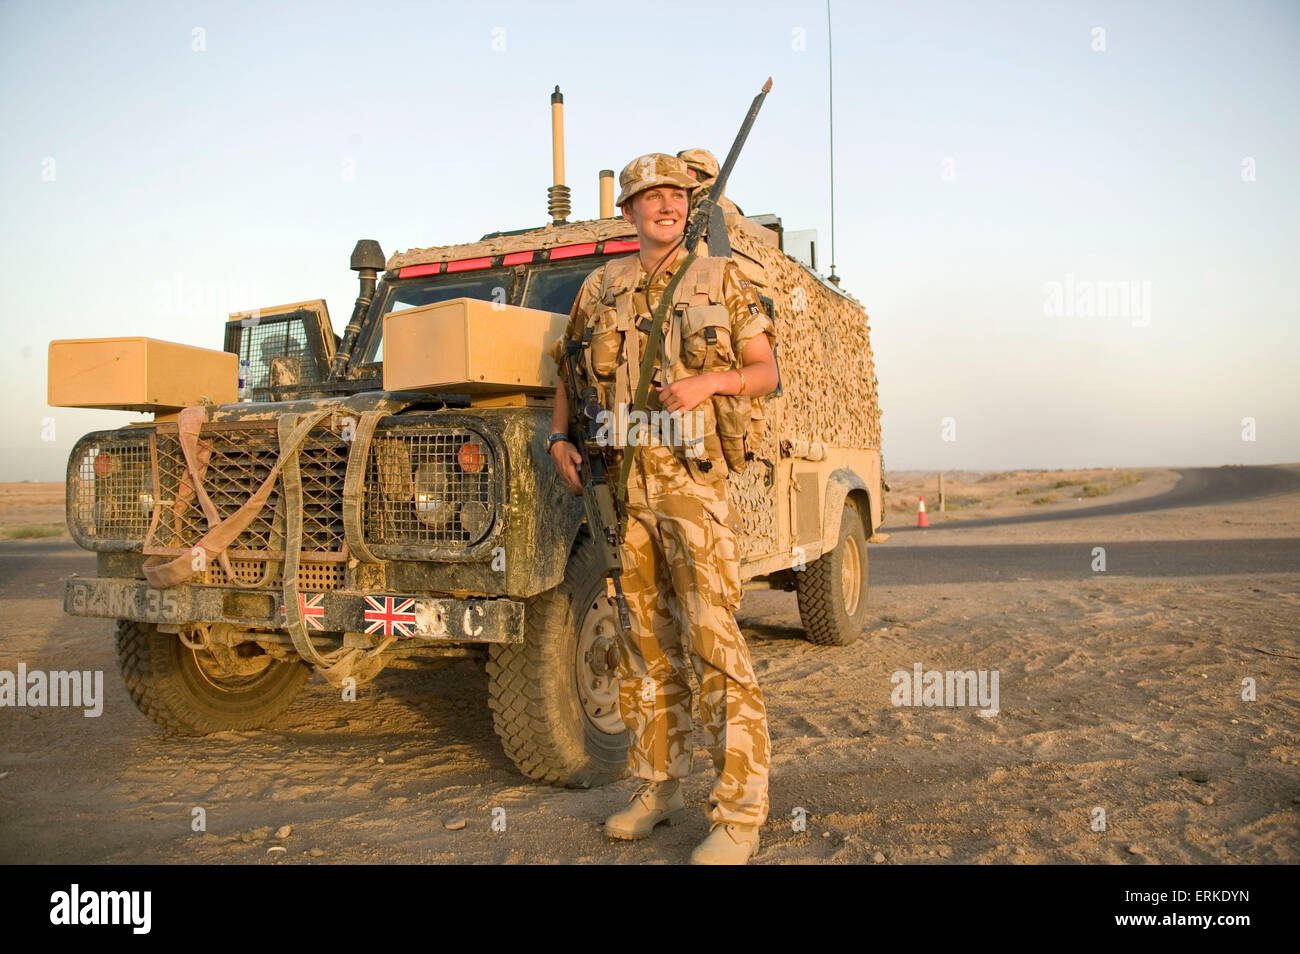 Victoria Wedgewood-Jones (Royal signals and the MOD media unit) on patrol with the 1st Battalion Devonshire and Dorset regiment. British Forces in Iraq.    Credit: Gary Calton / eyevine  For further information please contact eyevine tel: +44 (0) 20 8709 8709 e-mail: info@eyevine.com www.eyevine.com Credit: Gary Calton / eyevine  For further information please contact eyevine tel: +44 (0) 20 8709 8709 e-mail: info@eyevine.com www.eyevine.com Stock Photo